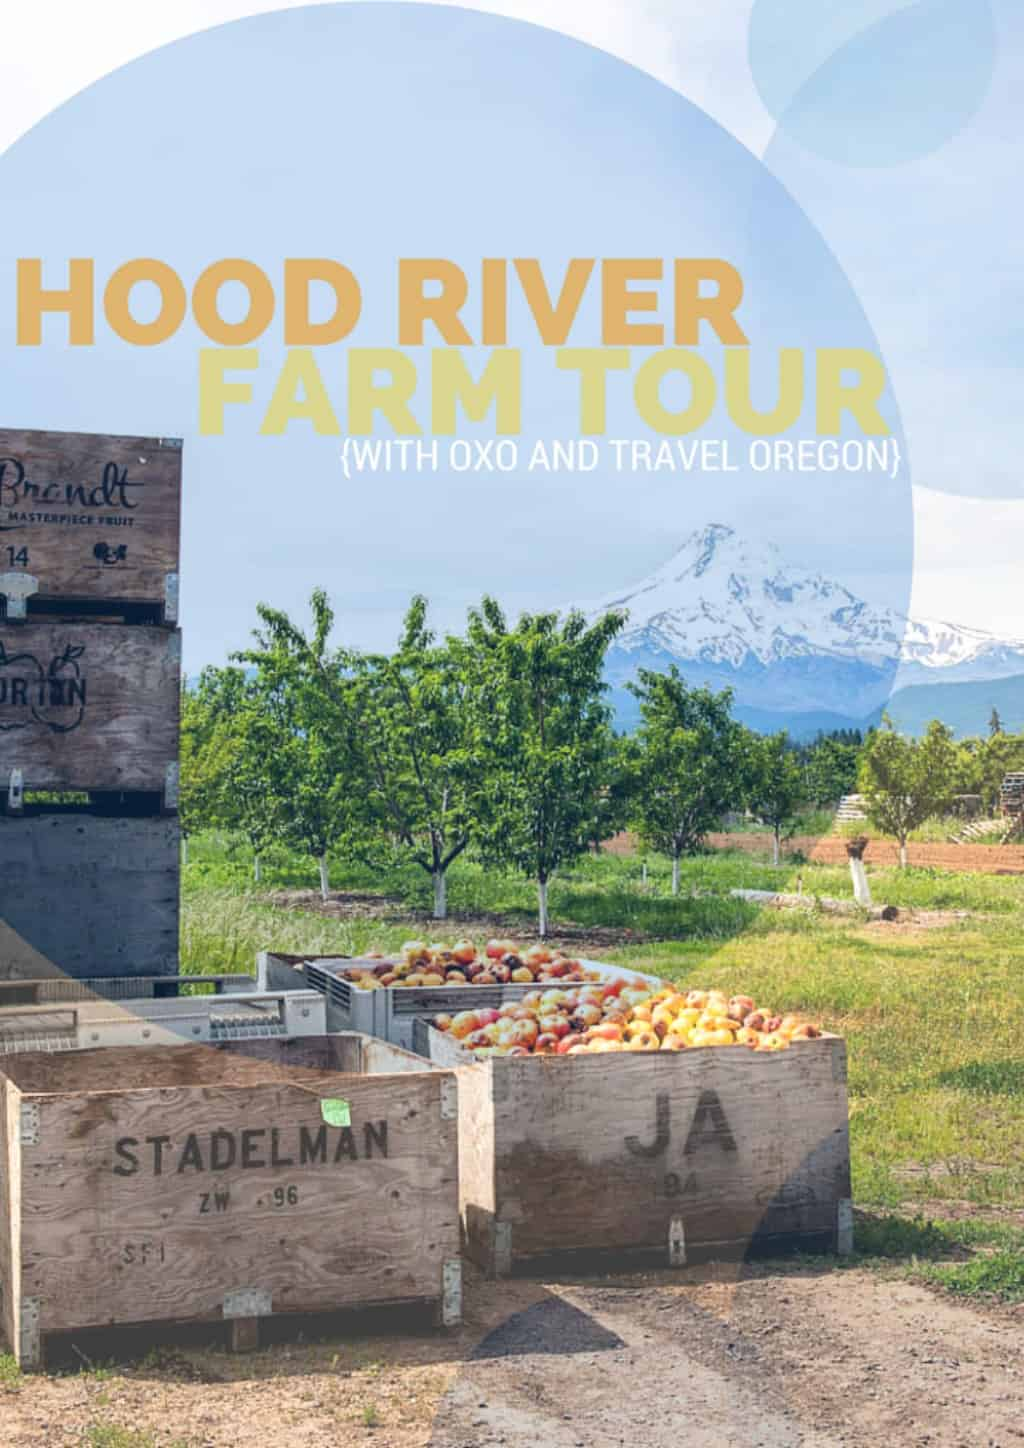 Hood River Farm Tour through the Hood River Valley Fruit Loop